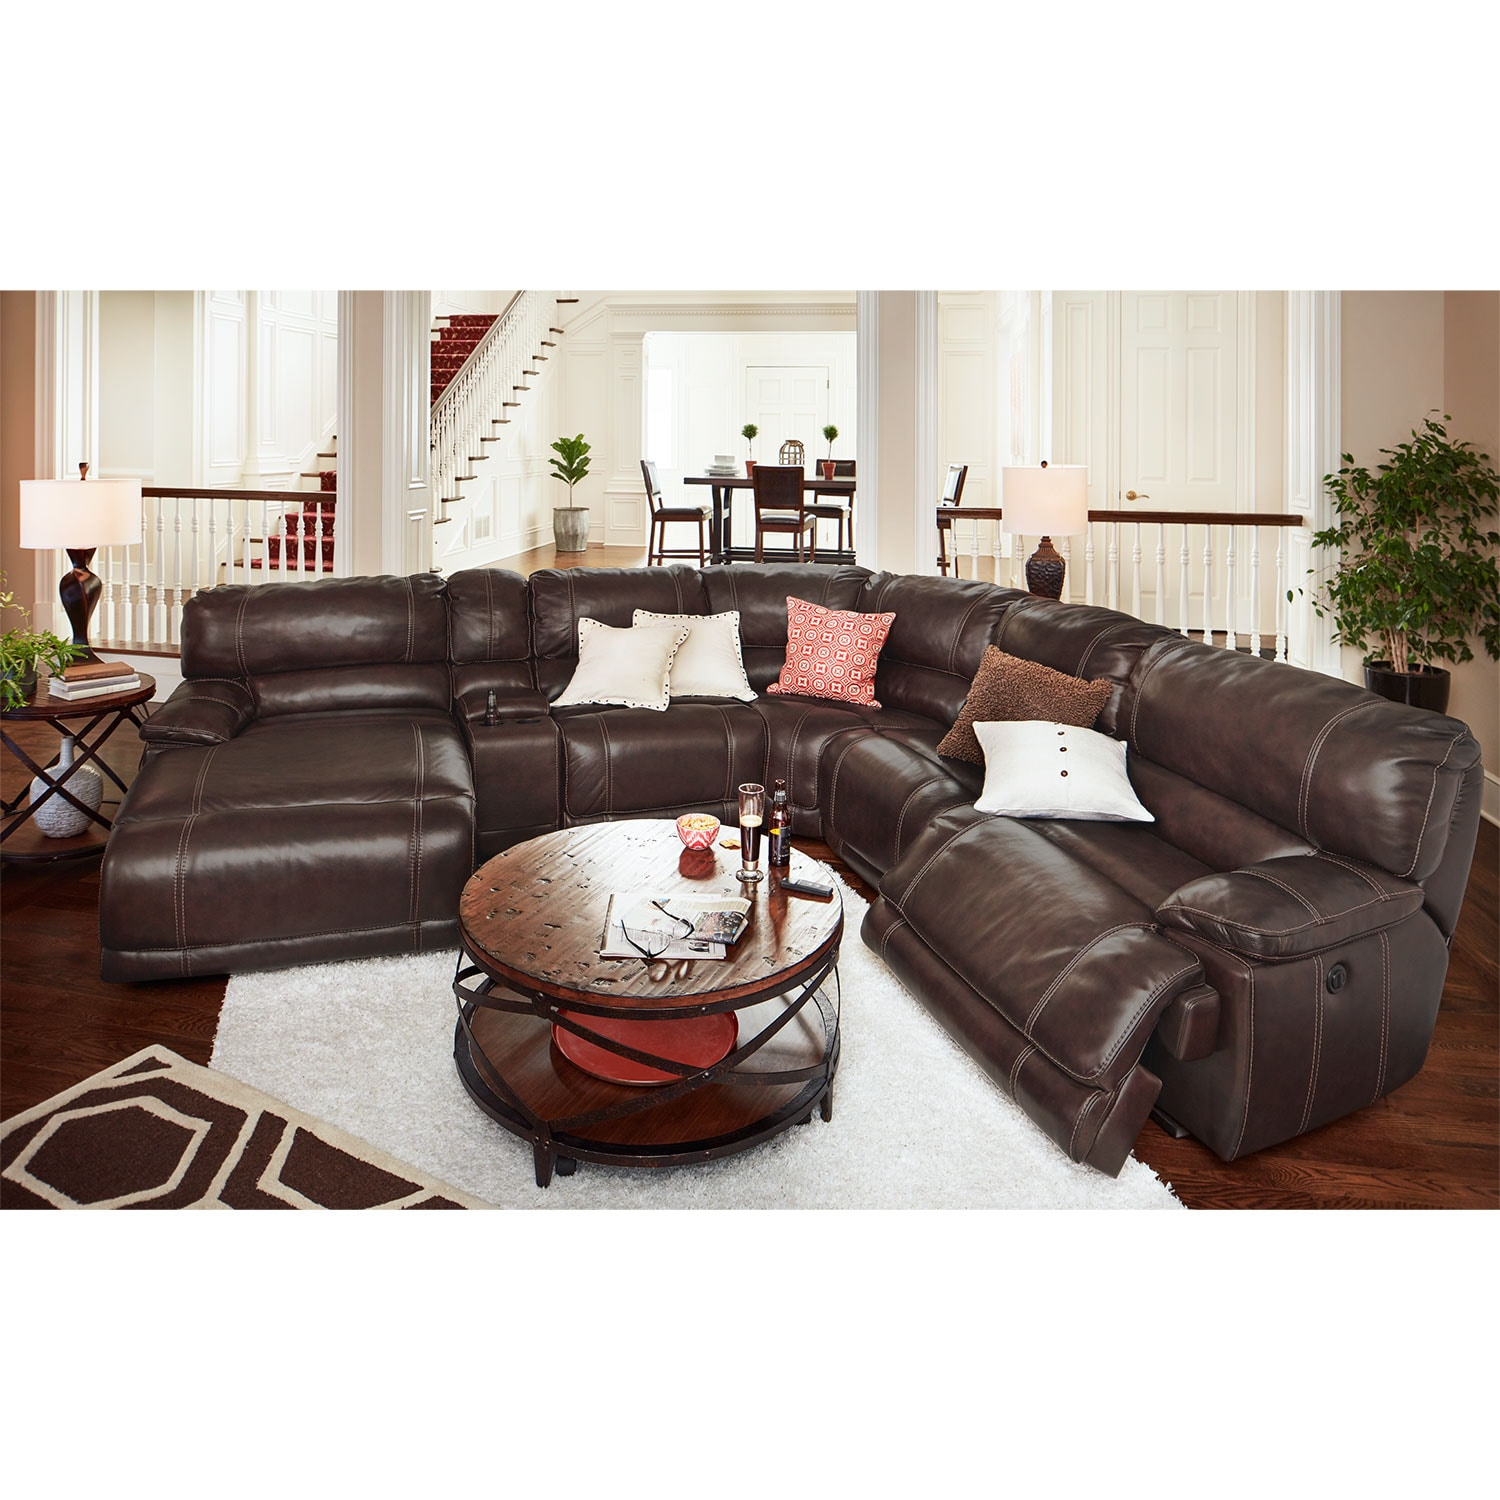 St Malo 6 Piece Reclining Sectional With Chaise